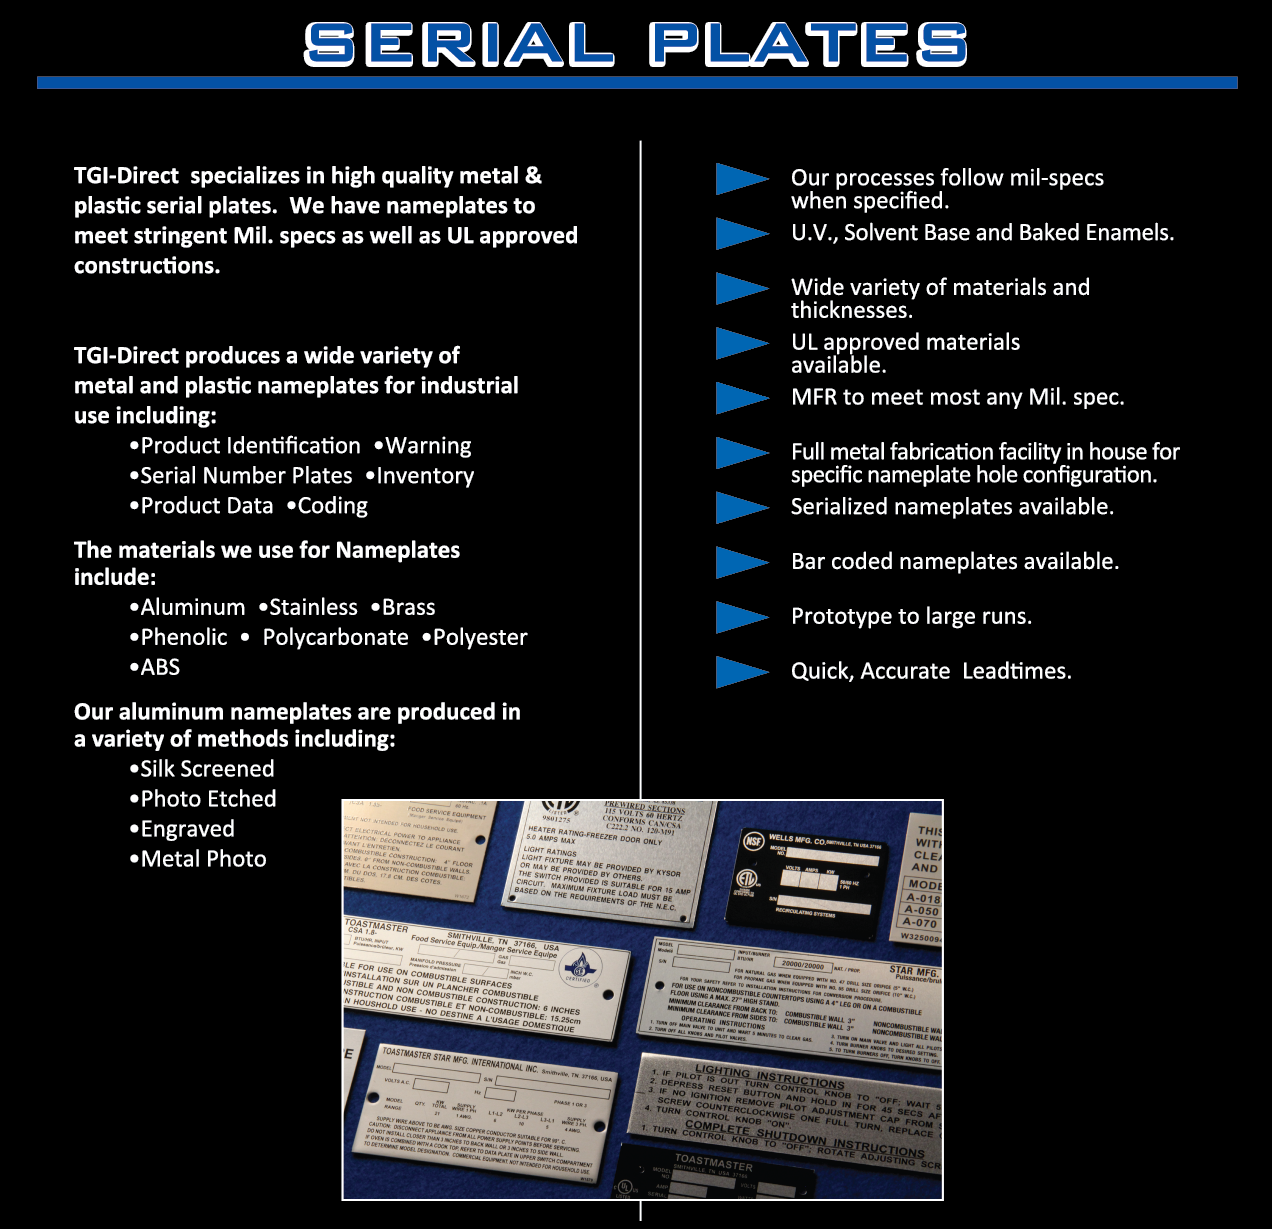 Serial Plates